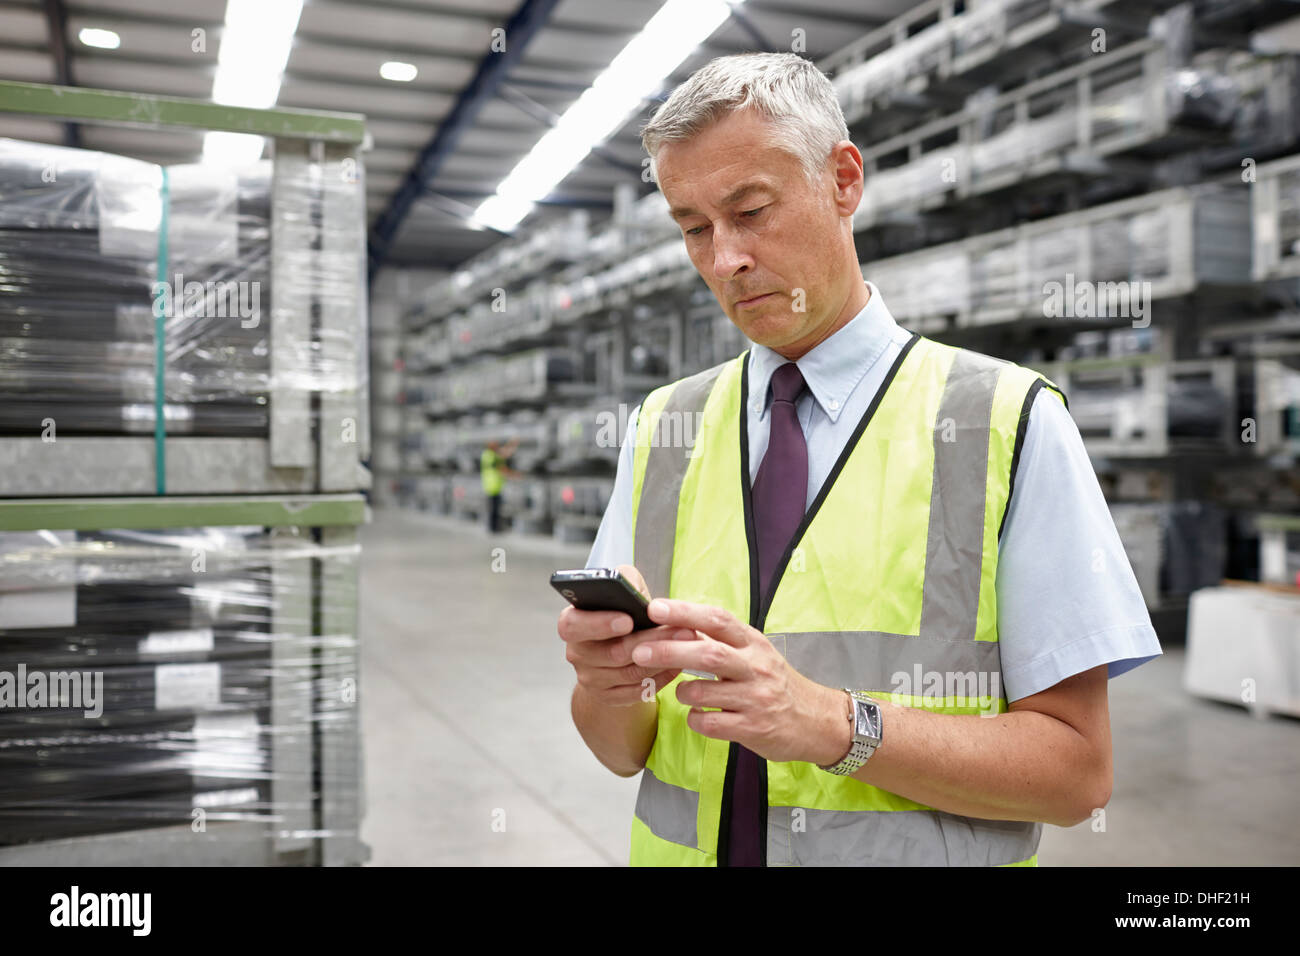 Portrait of manager using mobile phone in engineering warehouse - Stock Image